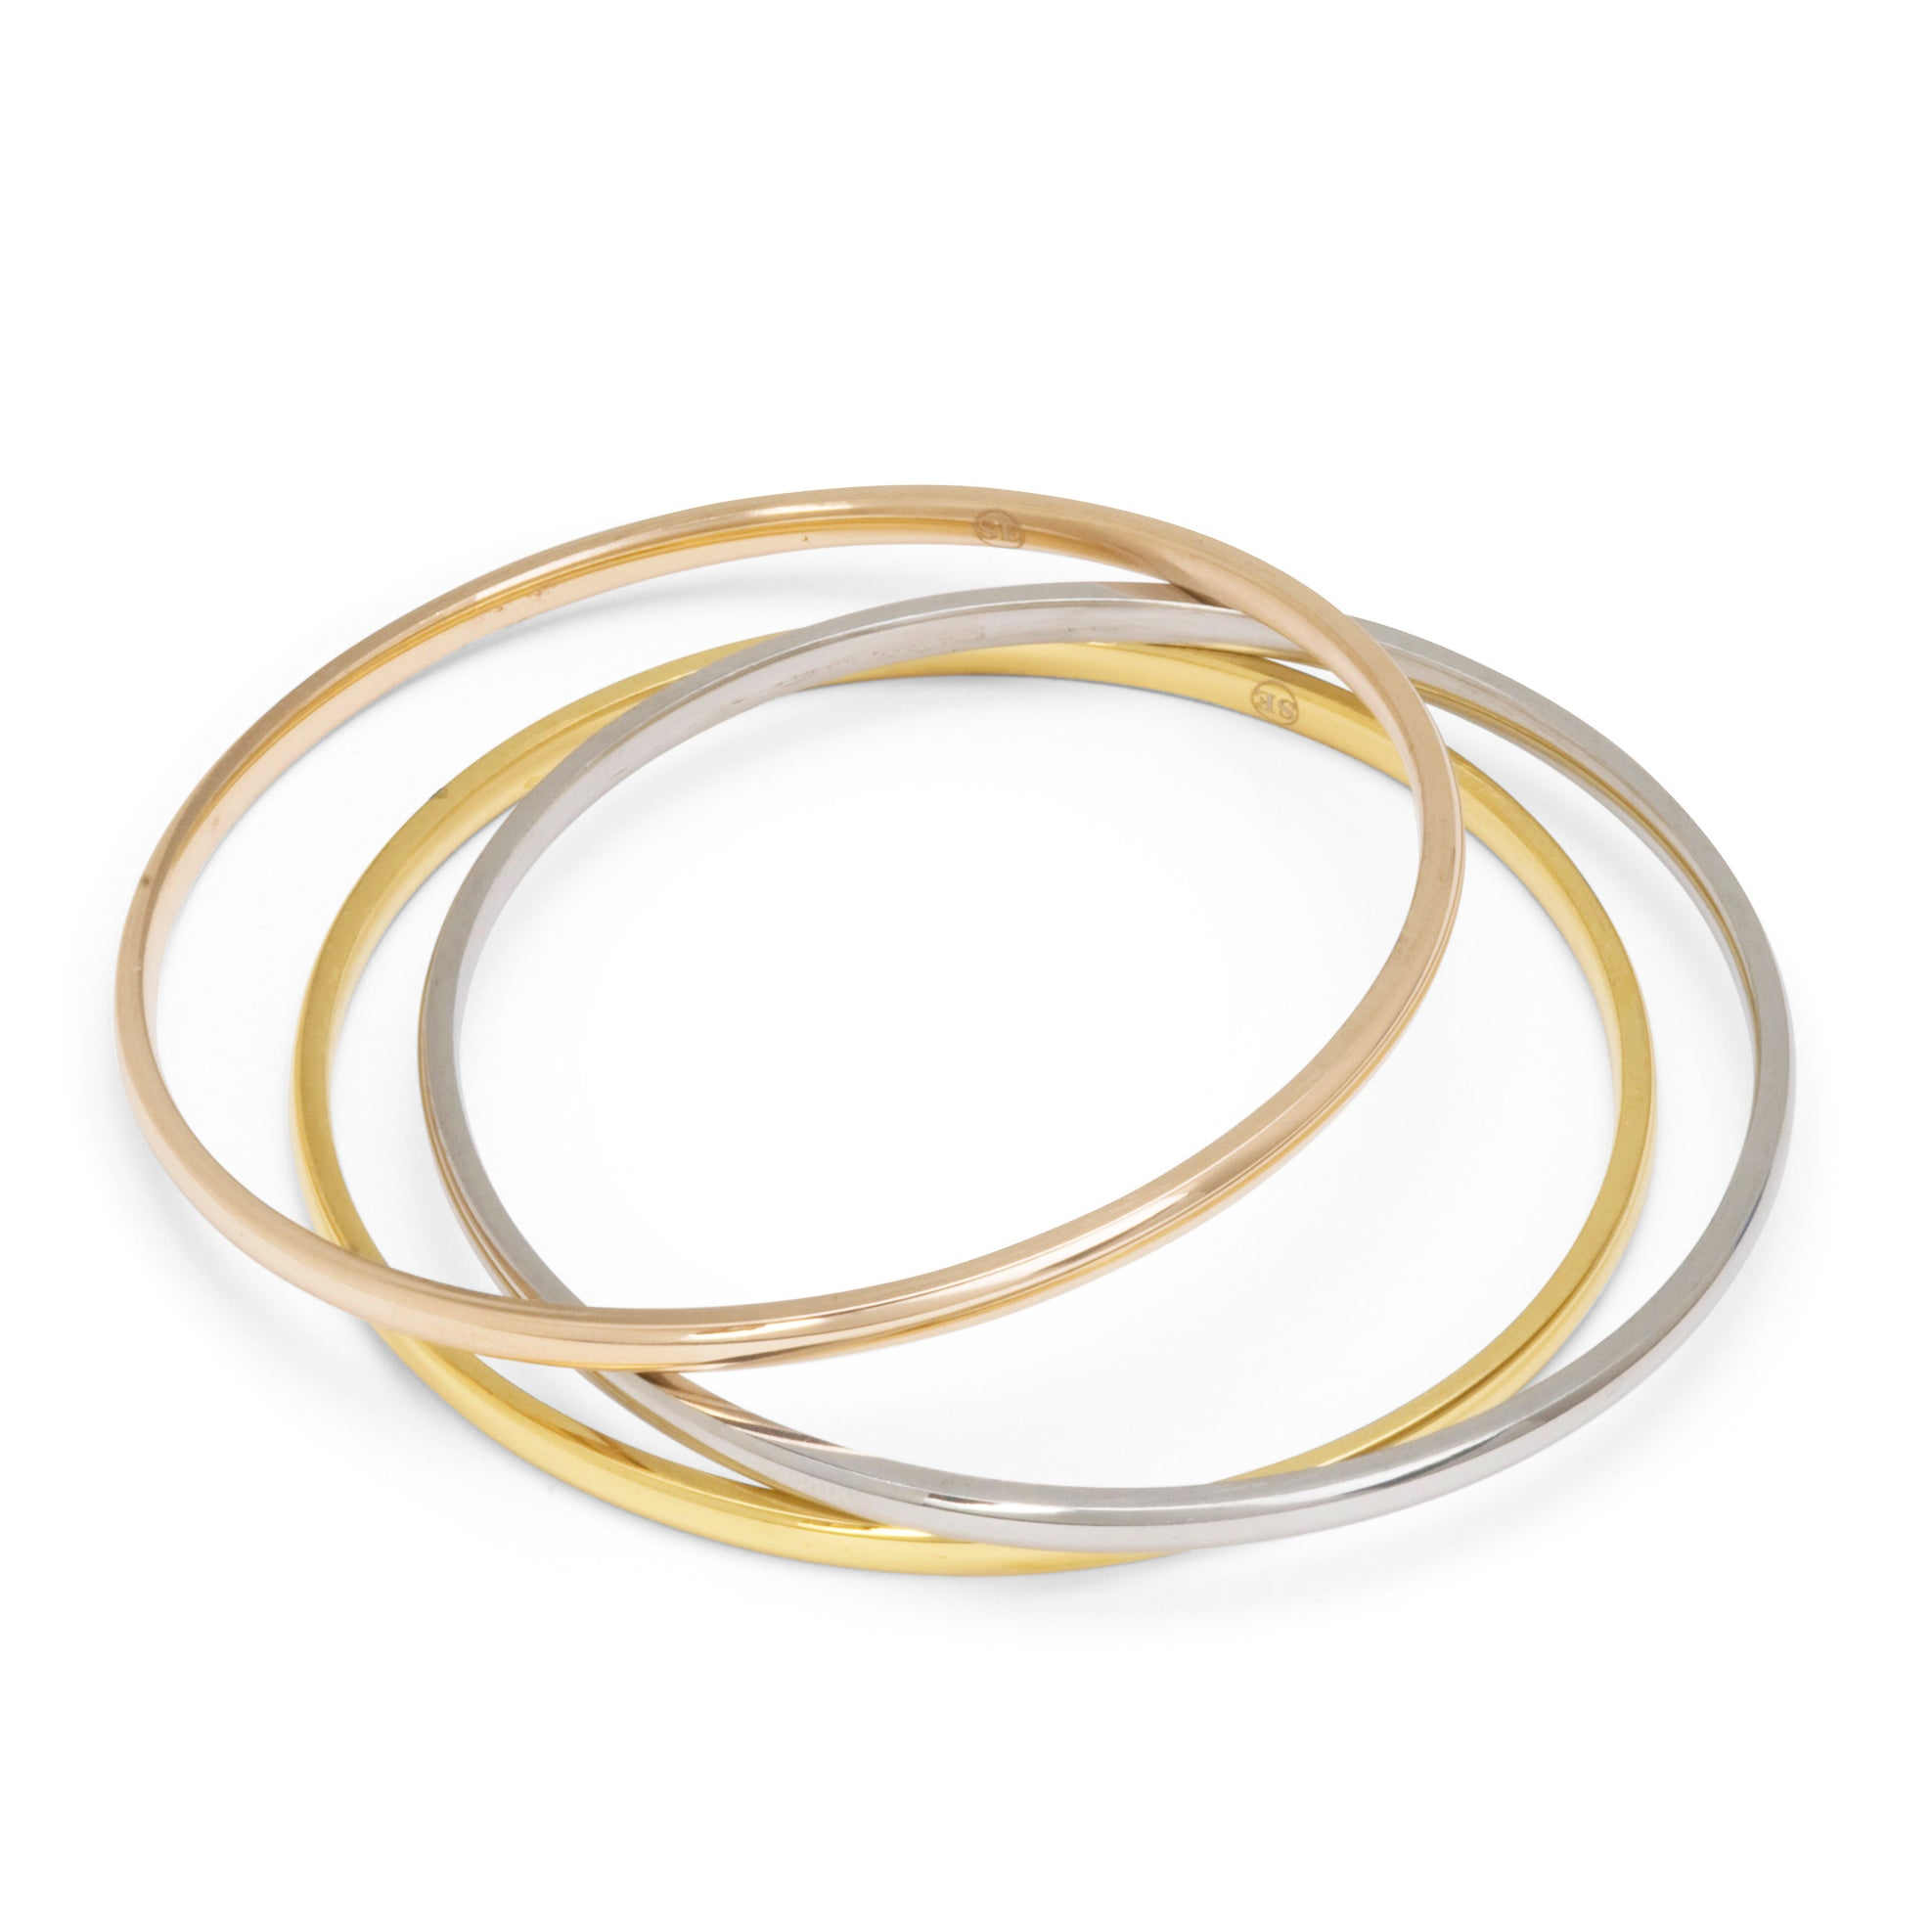 gold circles bangles charm bracelet bangle with